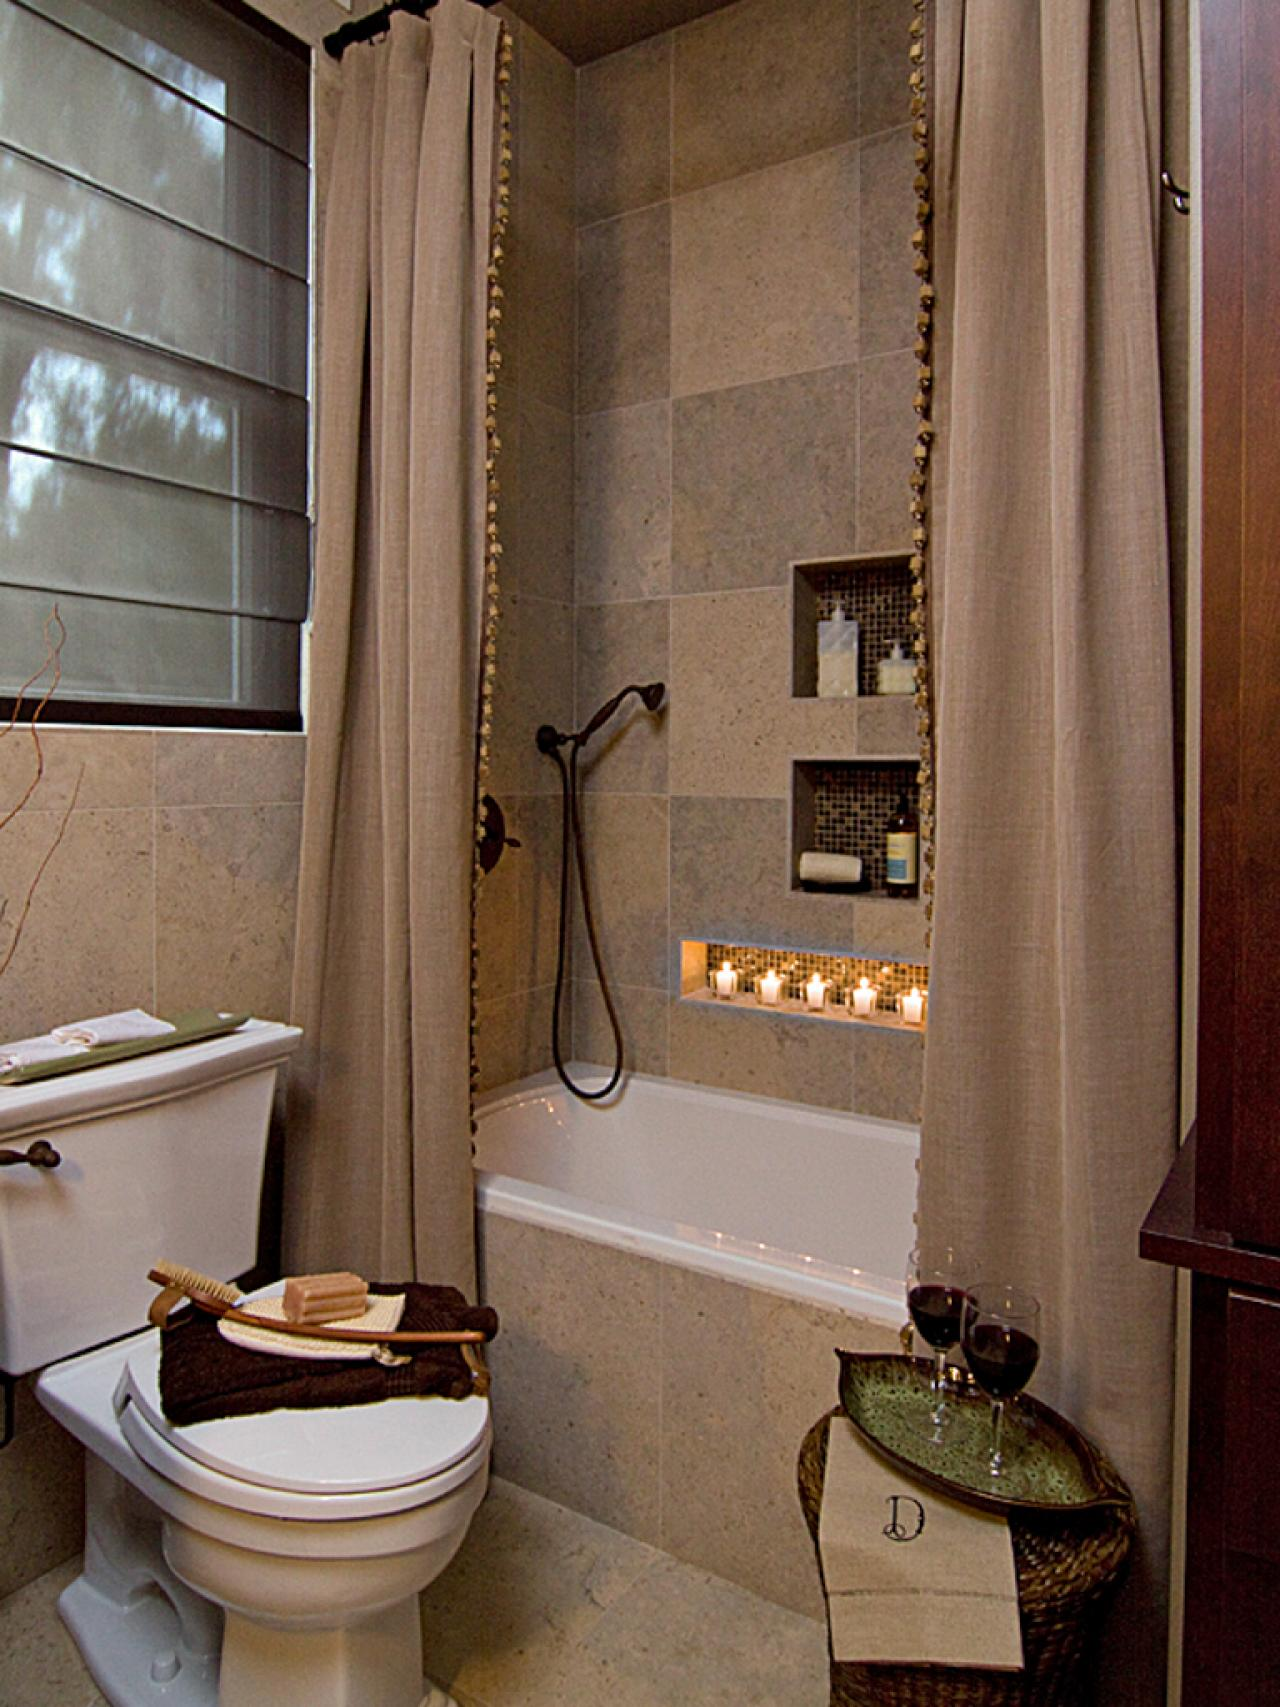 Small bathroom decorating ideas bathroom ideas designs for Designing small bathrooms ideas